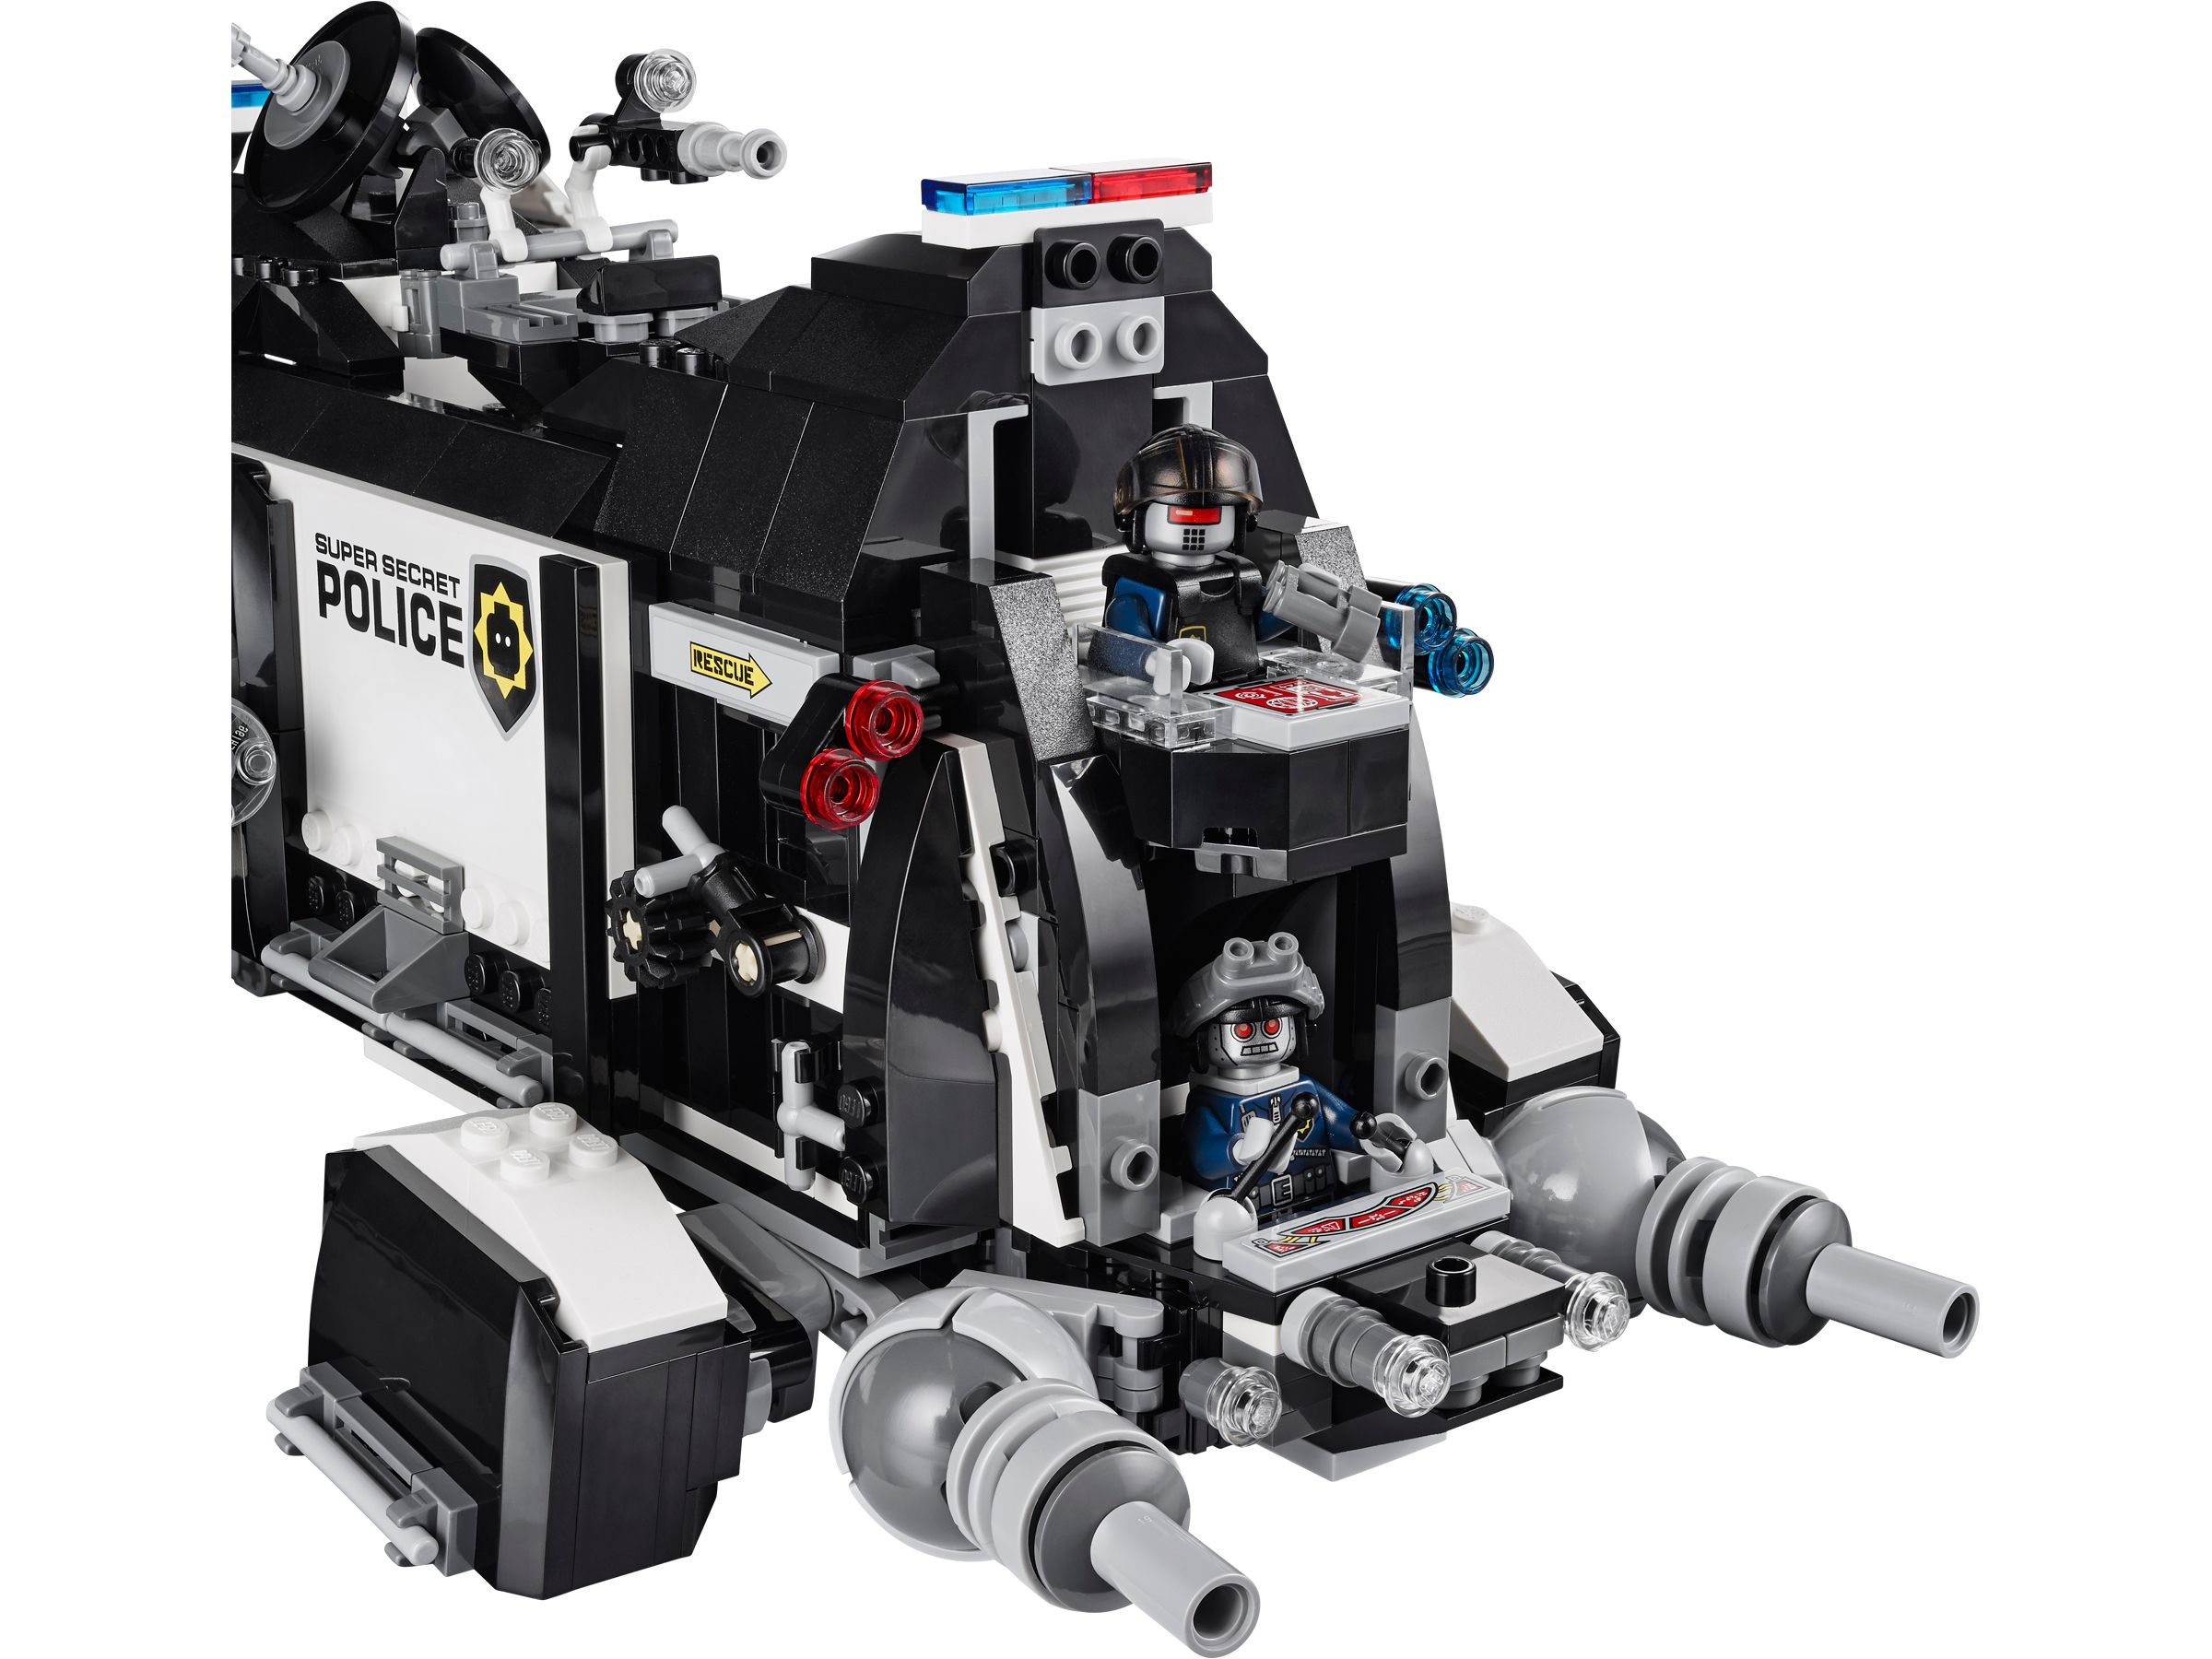 LEGO The LEGO Movie 70815 Raumschiff der Super-Geheimpolizei LEGO_70815_alt3.jpg